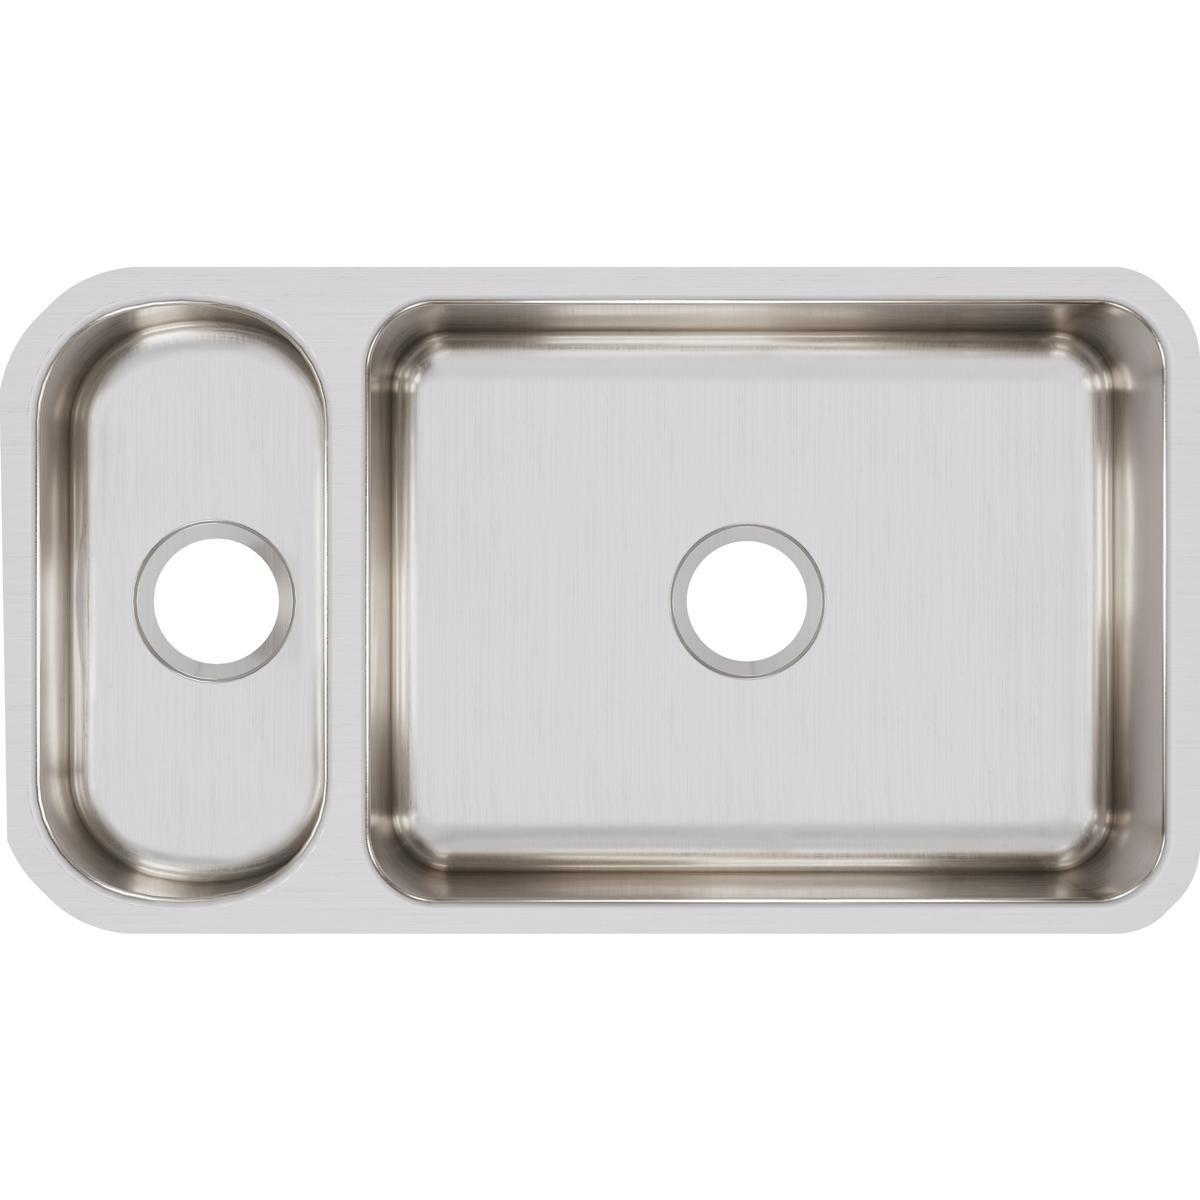 "Elkay Lustertone Classic Stainless Steel 32-1/4"" x 18-1/4"" x 7-3/4"", 30/70 Double Bowl Undermount Sink-DirectSinks"